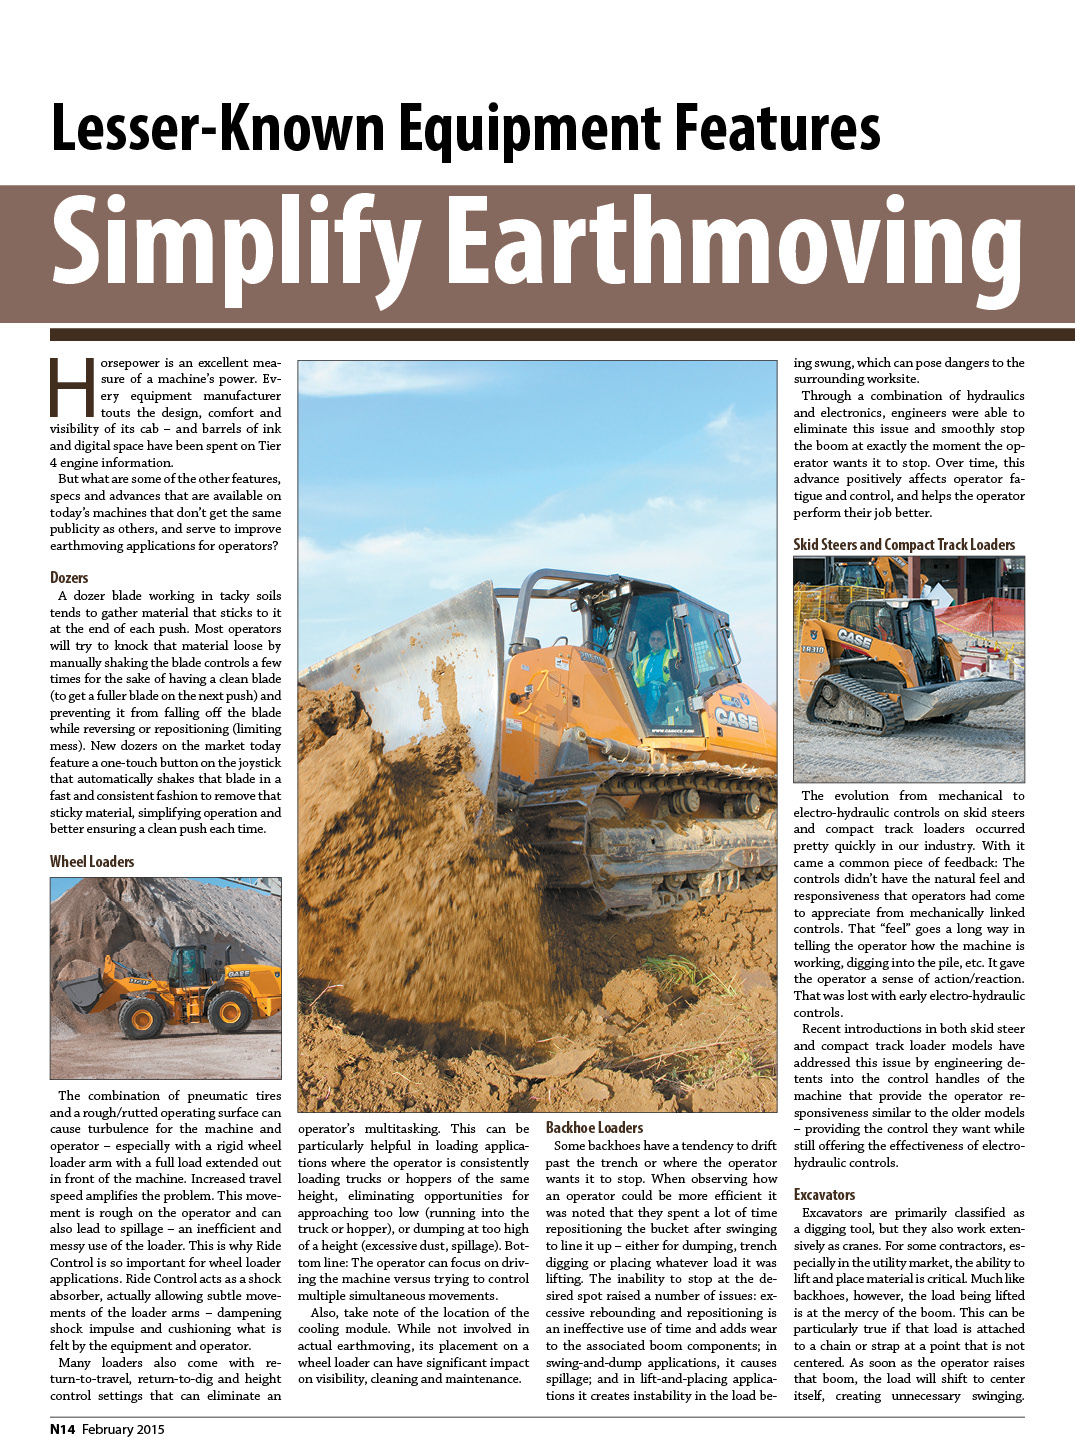 Lesser-Known Equipment Features Simplify Earthmoving 1